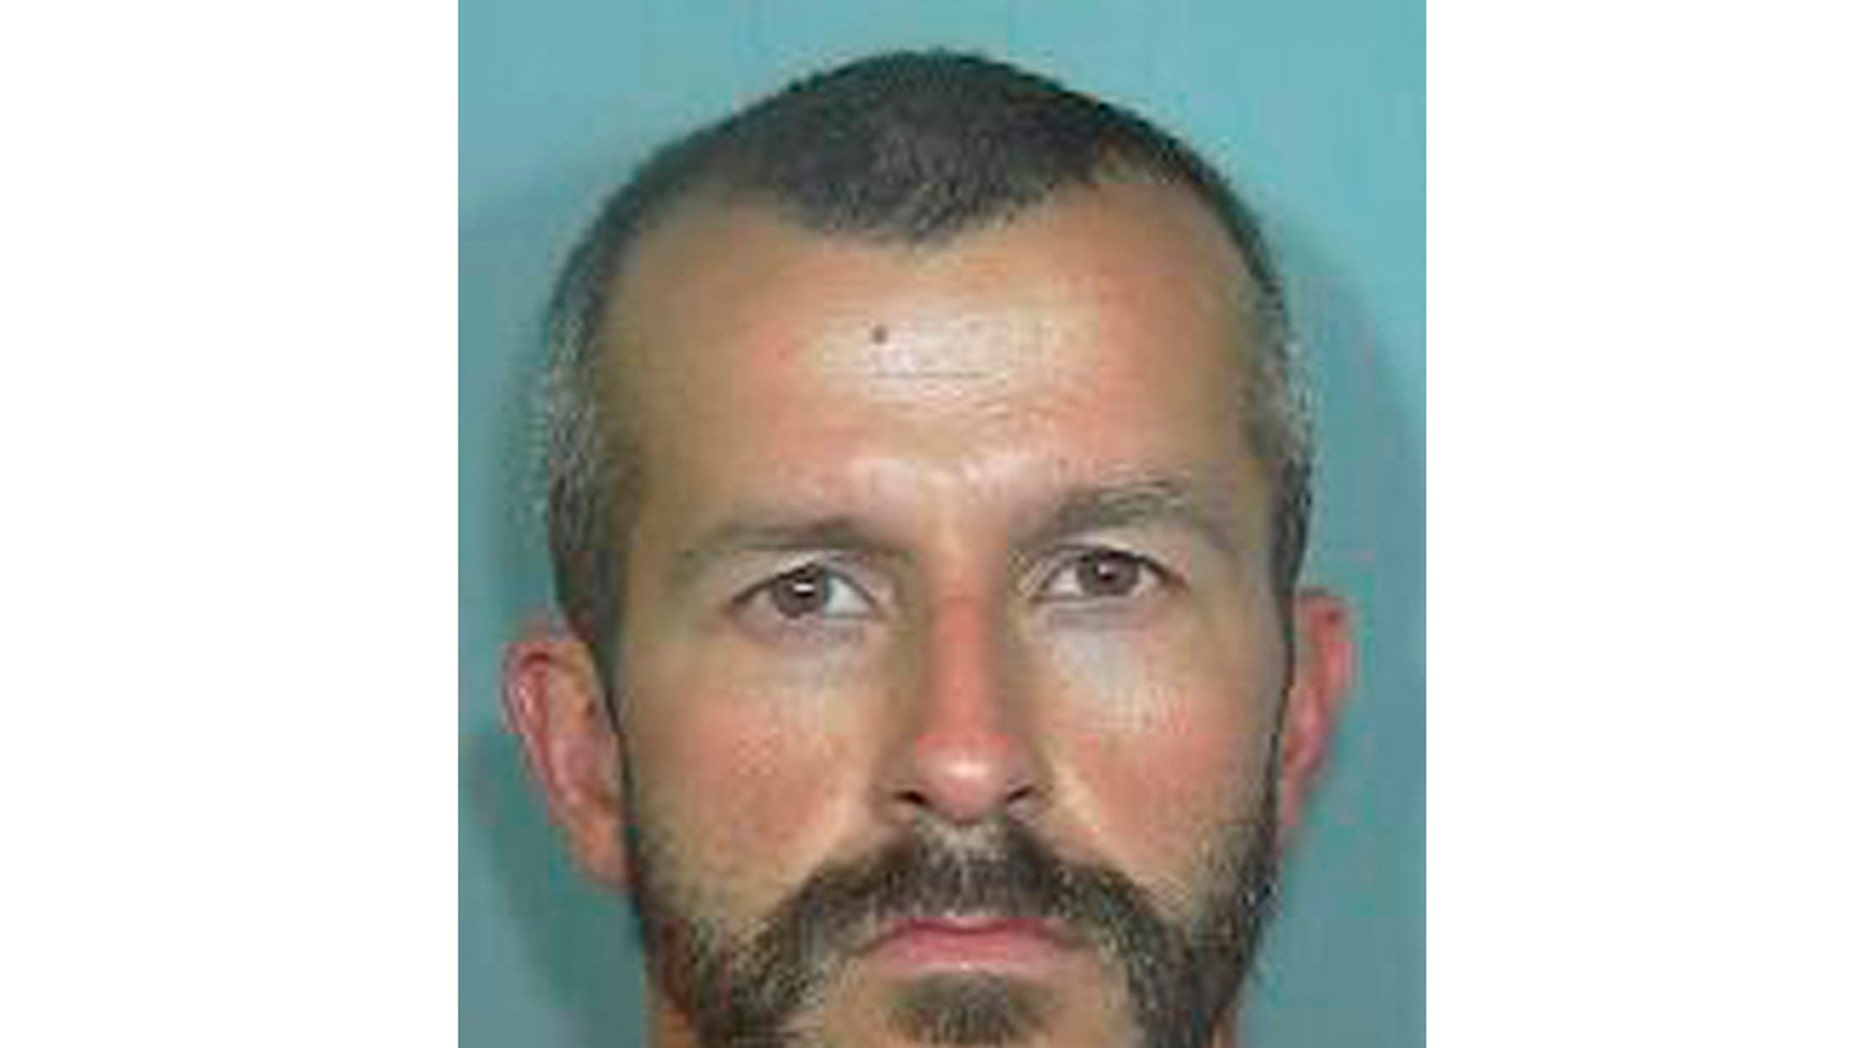 County Sheriff's Office shows Chris Watts who pleaded guilty in the deaths of his pregnant wife 34-year-old Shanann Watts and their two daughters 4-year-old Bella and 3-year-old Celeste. Documents show Watt